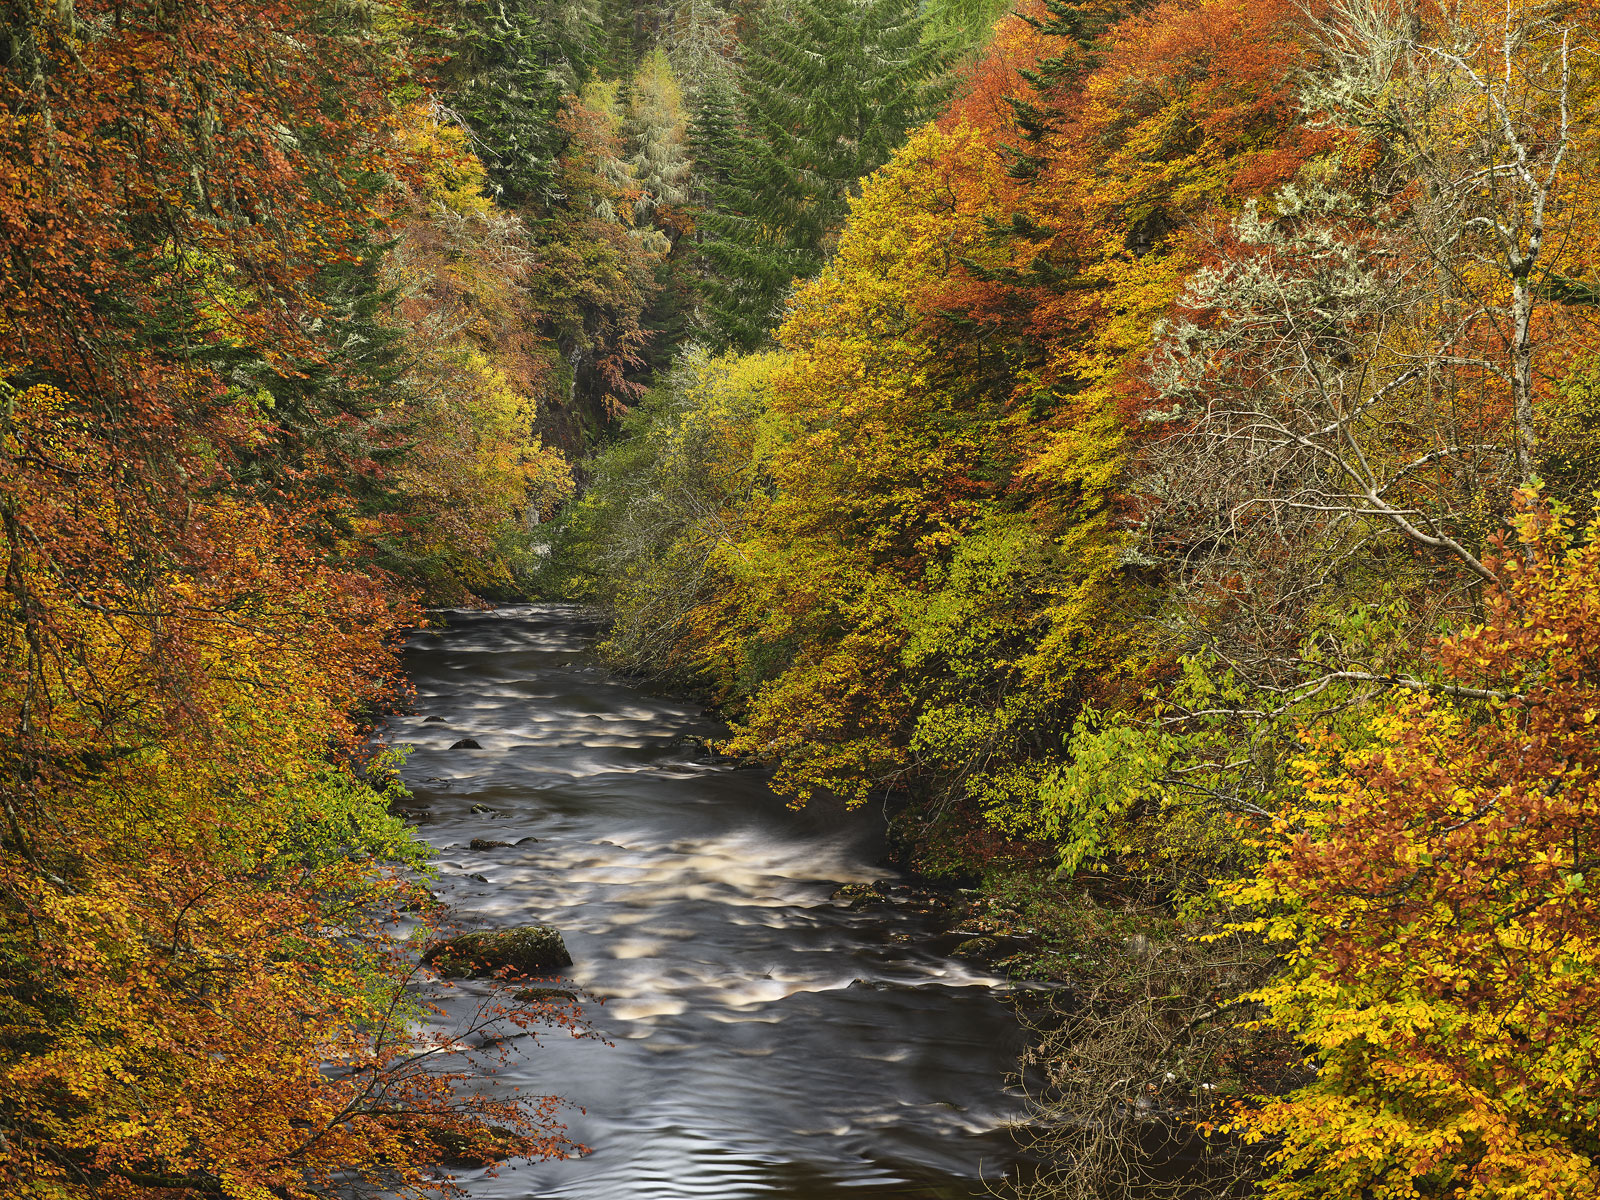 Very little can compare with the vibrancy of colour usually found in Scotlands premier autumnal glens like Cannich, strathfarrar...